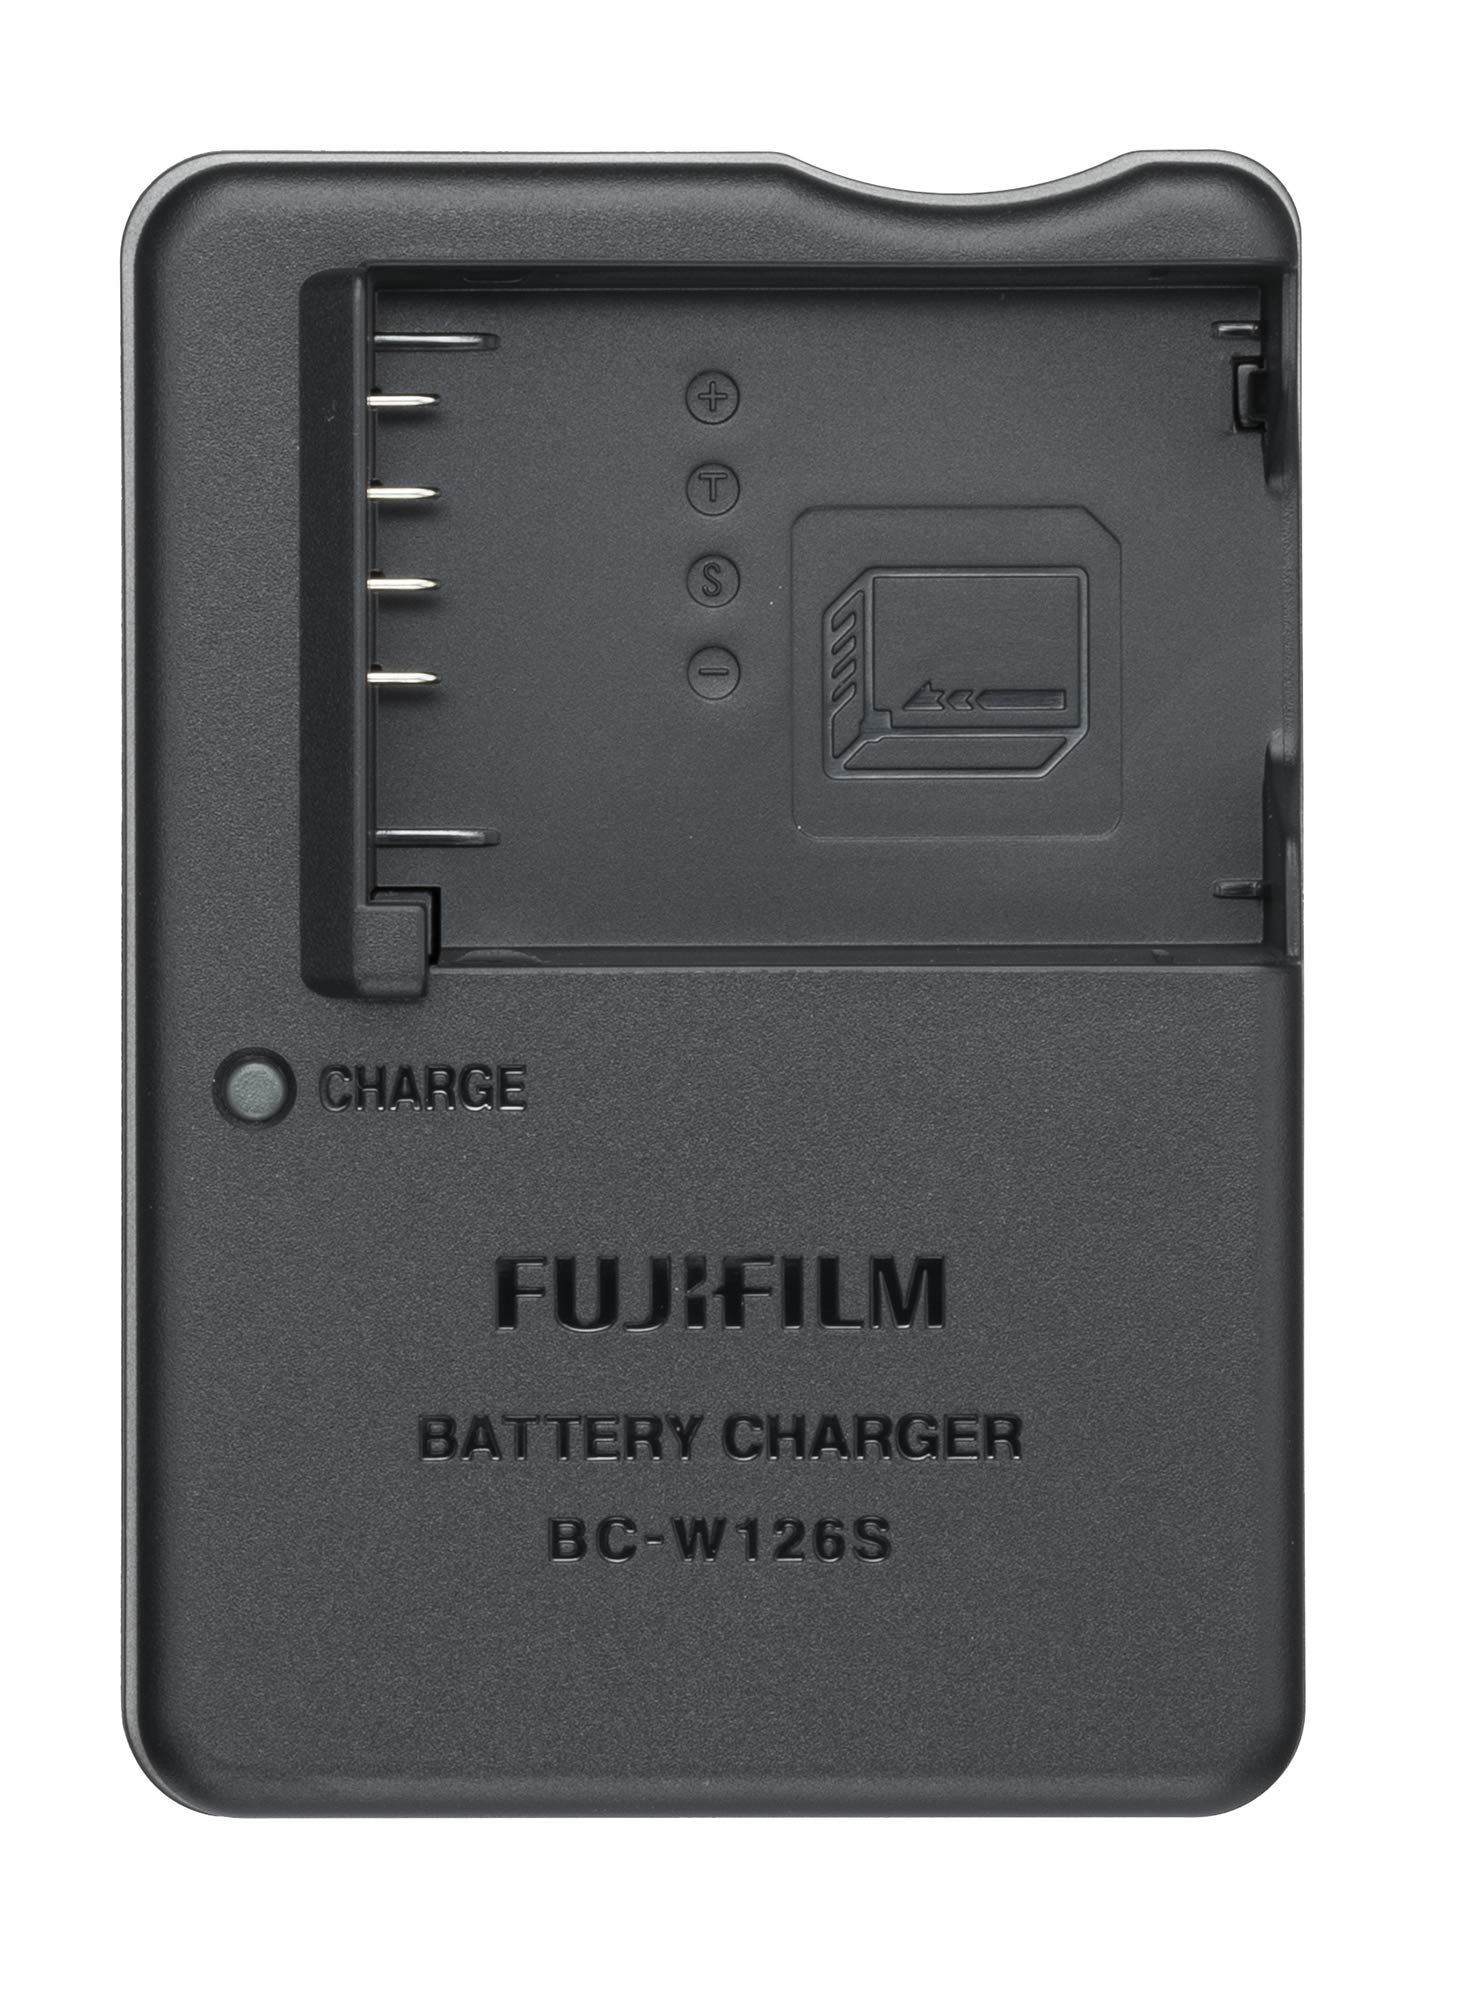 Fujifilm Battery Charger BC-W126S  for NP-W126S Li-ion Battery by Fujifilm